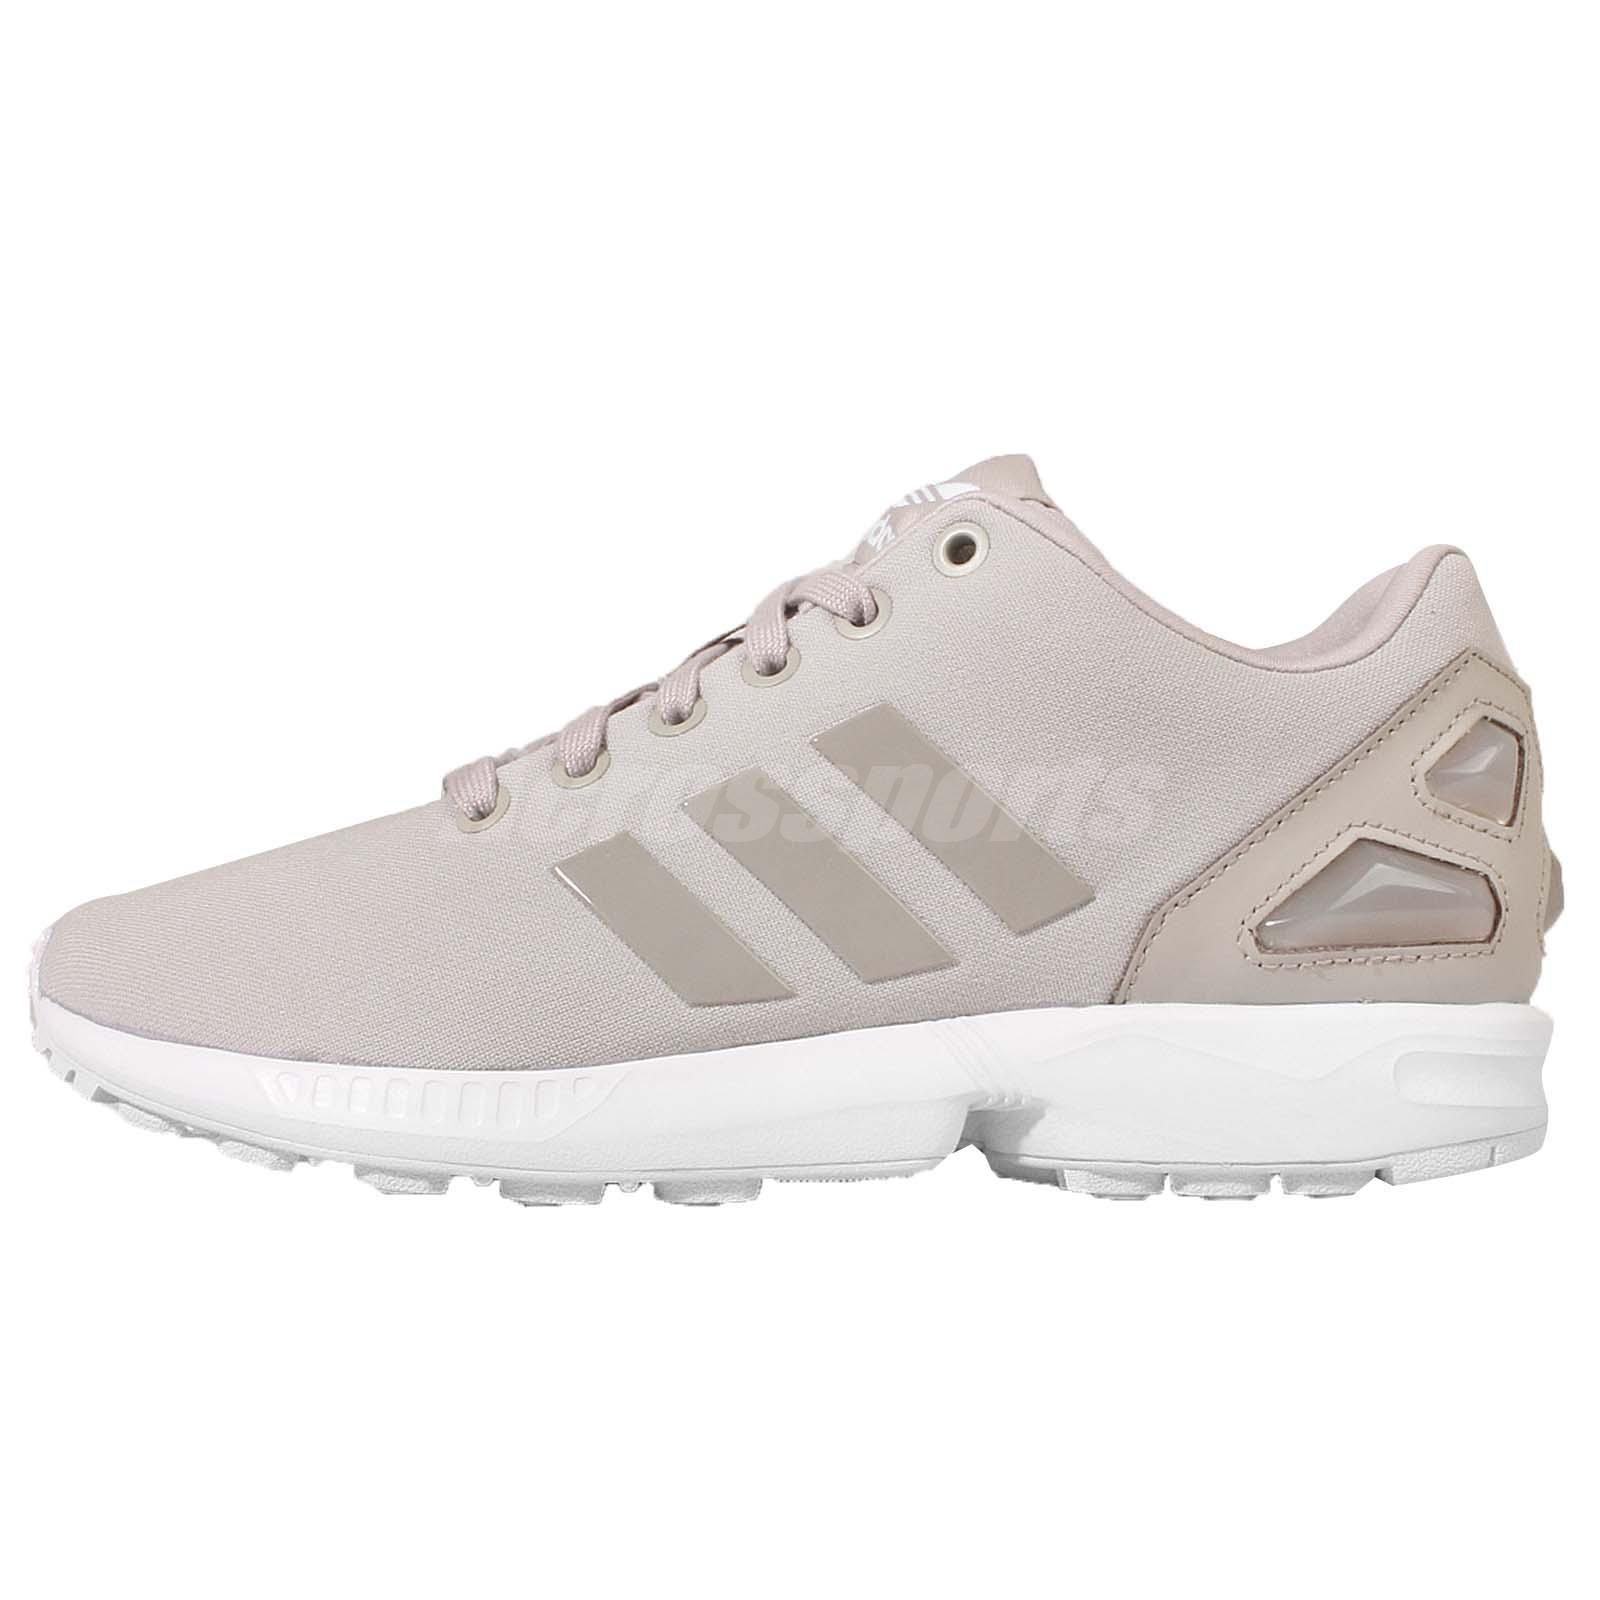 Adidas Flux Grey And White